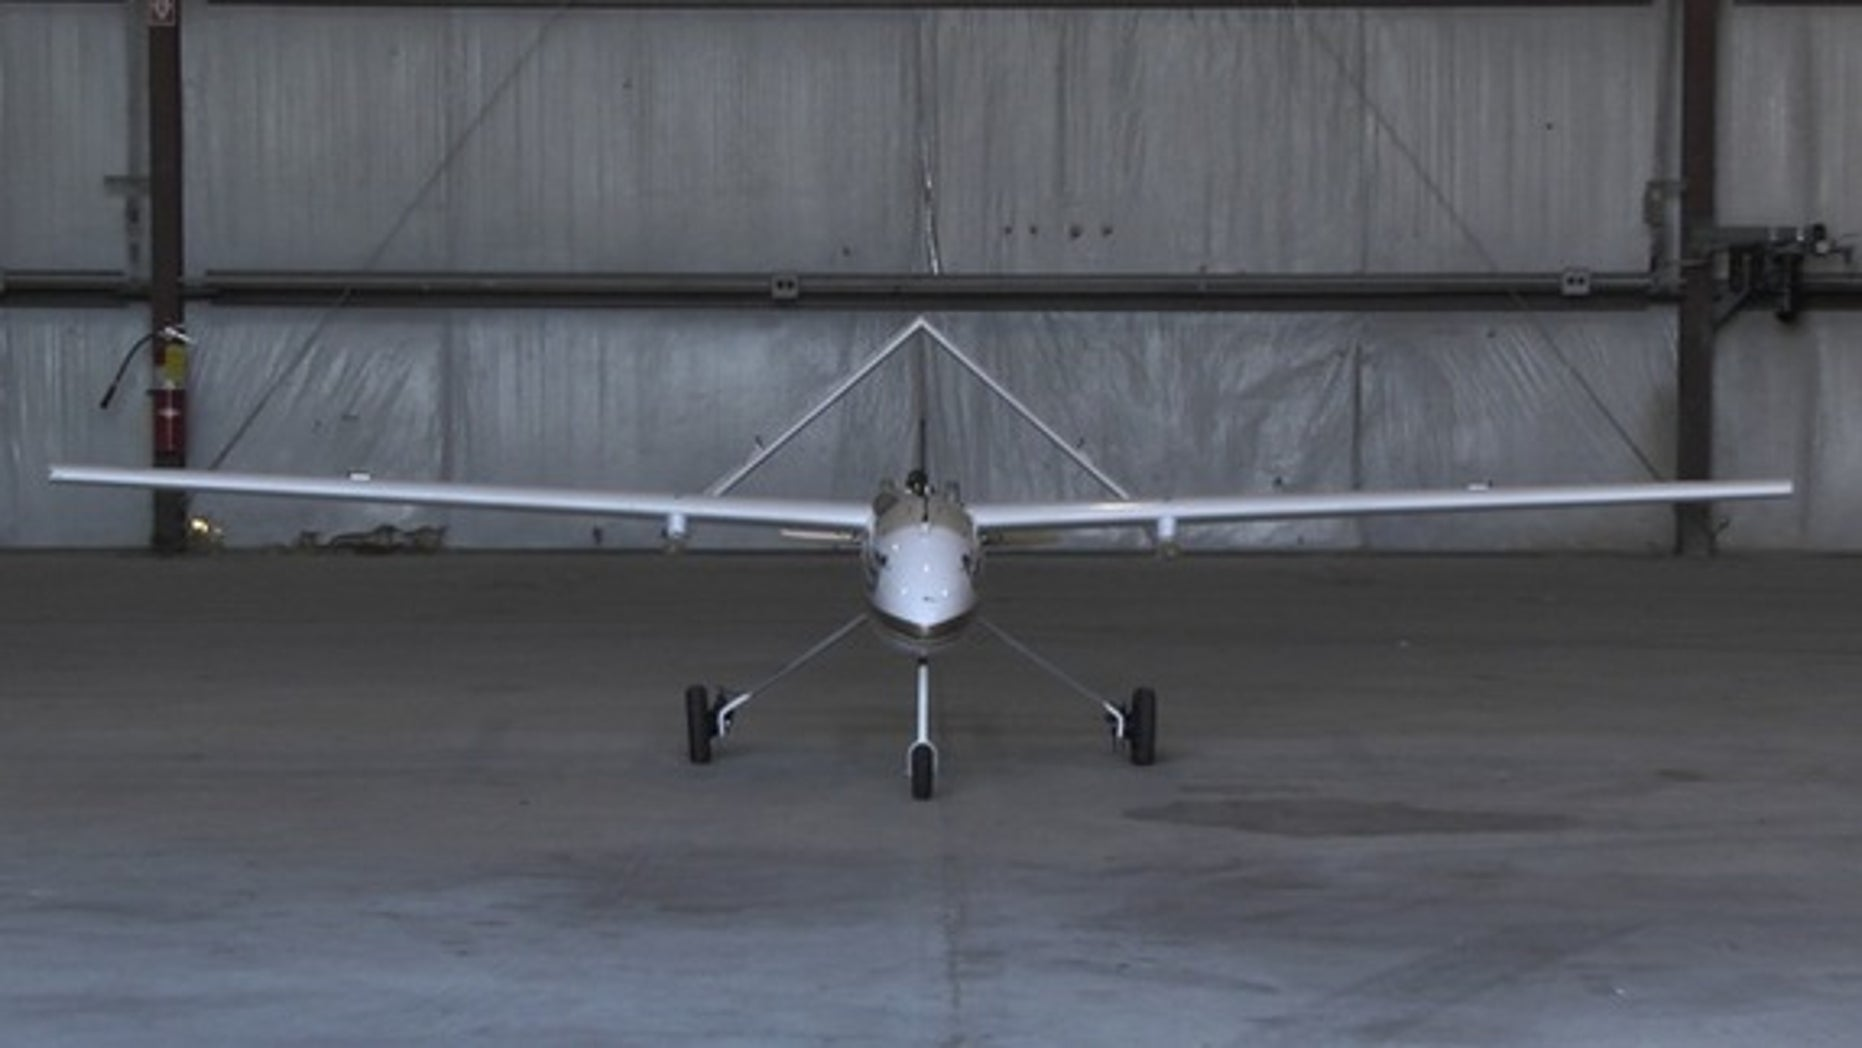 Scientists are developing cybersecurity systems to protect military drones from being hacked.